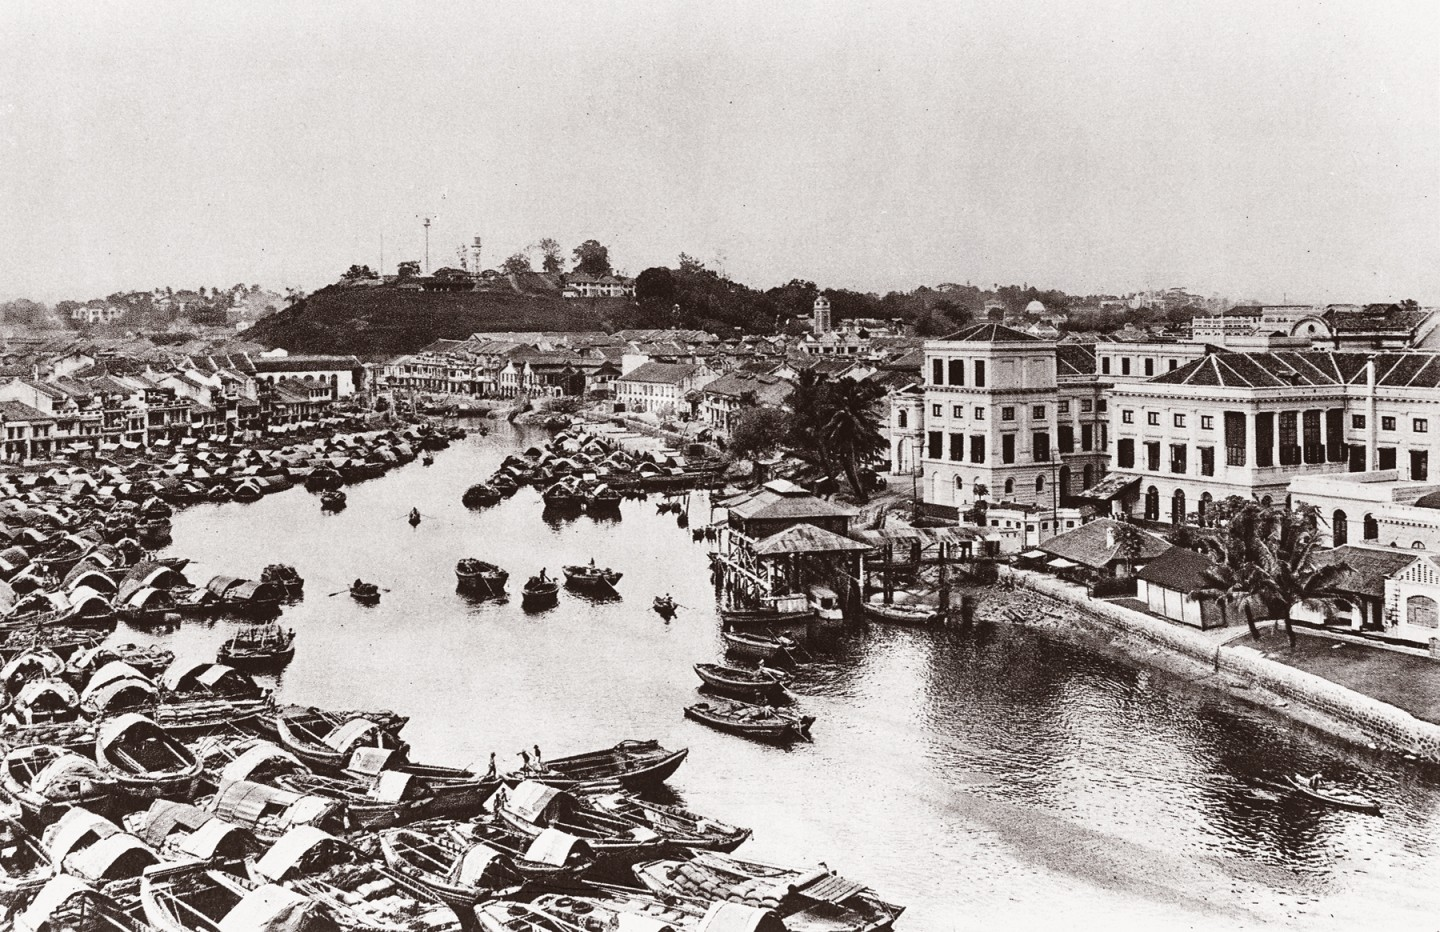 An old picture of Singapore River. At near right is former headquarters of Boustead Singapore, founded in 1828 by Edward Boustead. Boustead Singapore is the second oldest company in Singapore. (Boustead Singapore)